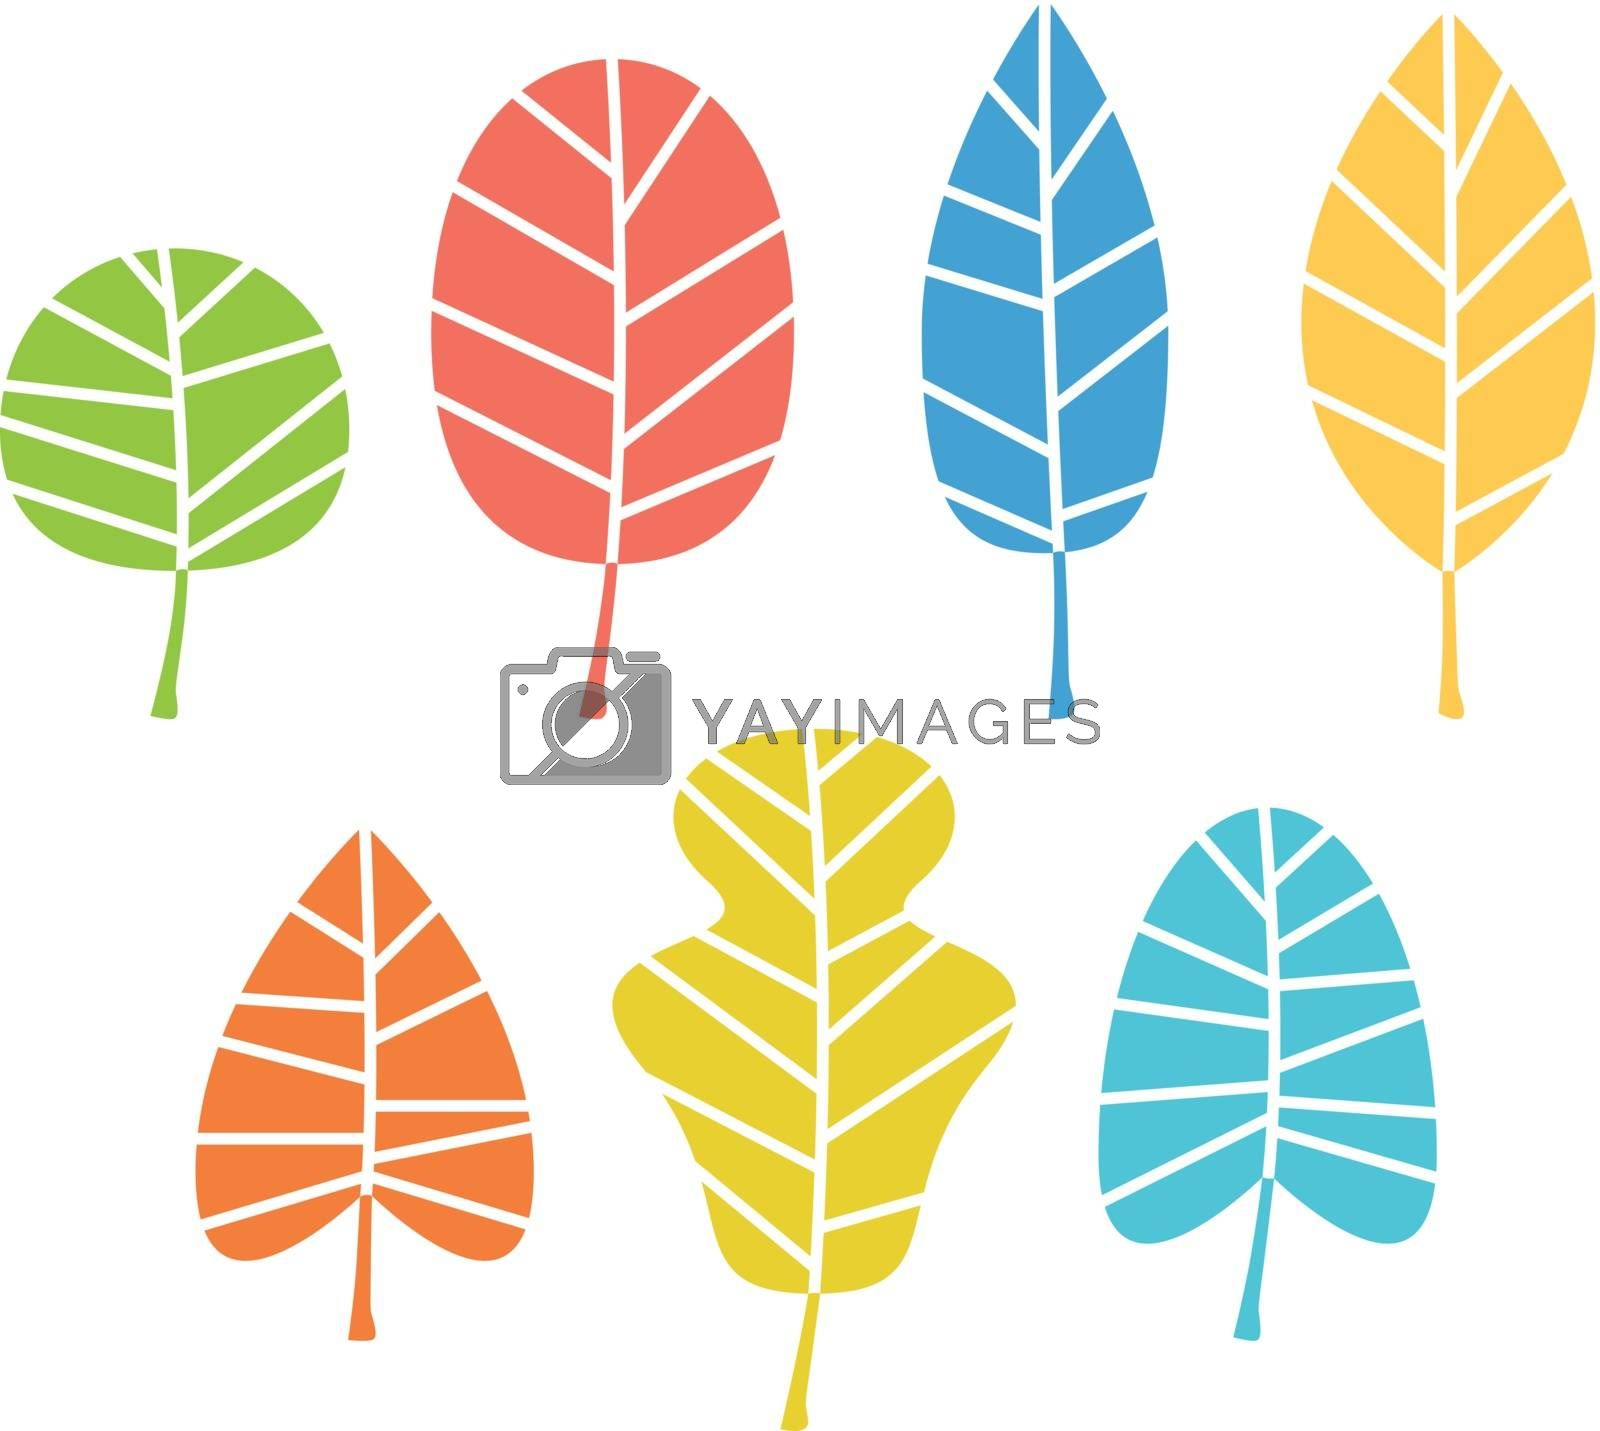 Royalty free image of Autumn leaves collection in vibrant colors isolated on white by Lordalea